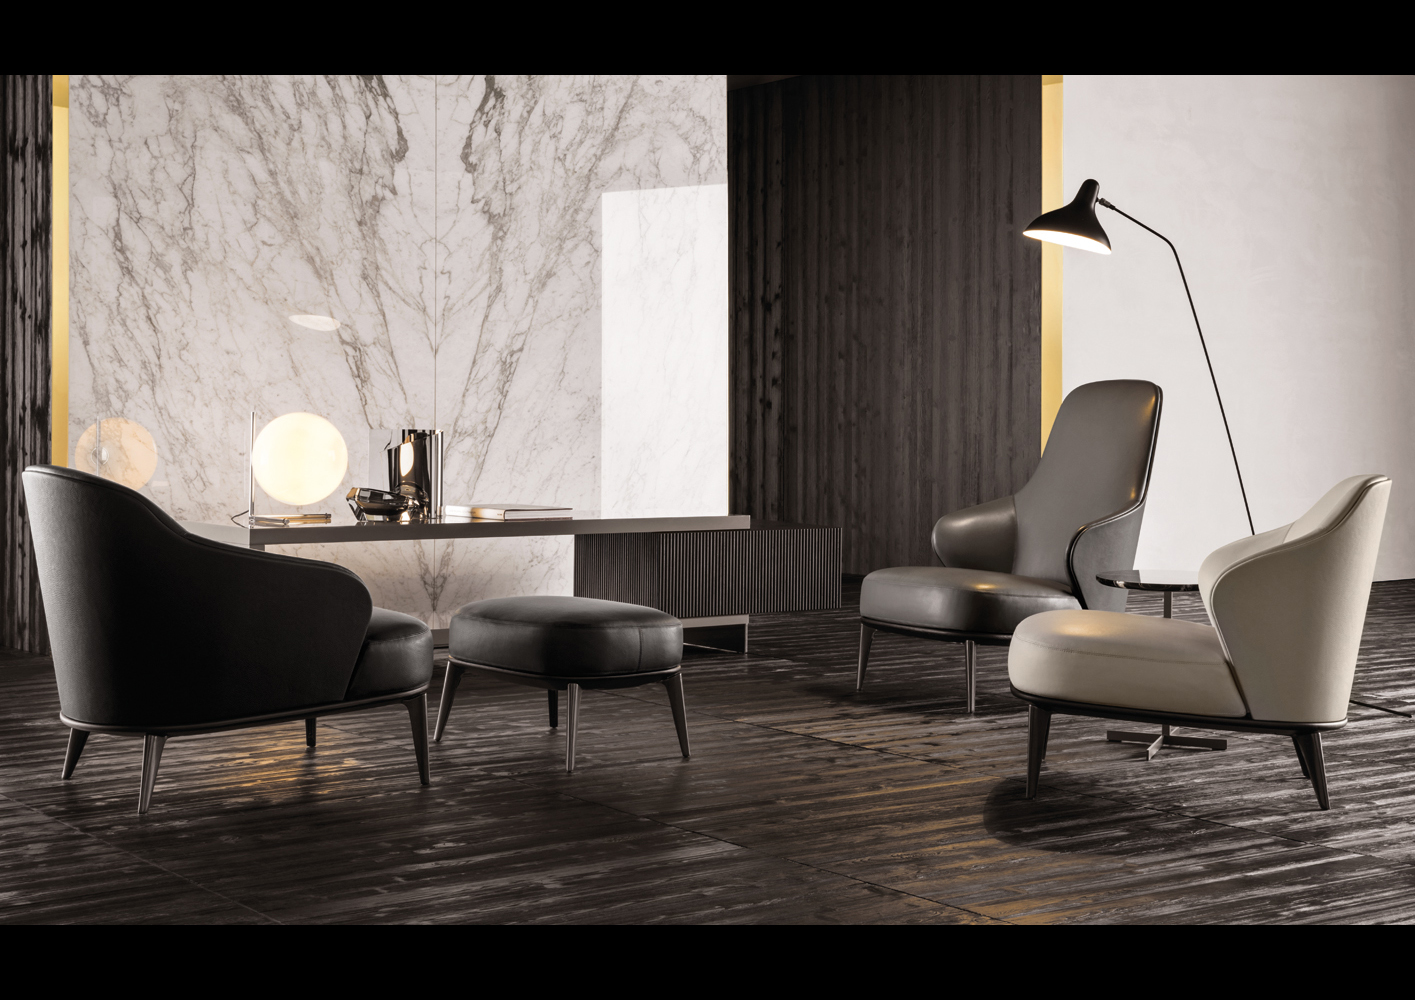 leather bergere chair and ottoman king throne leslie armchair | designed by rodolfo dordoni, minotti, orange skin